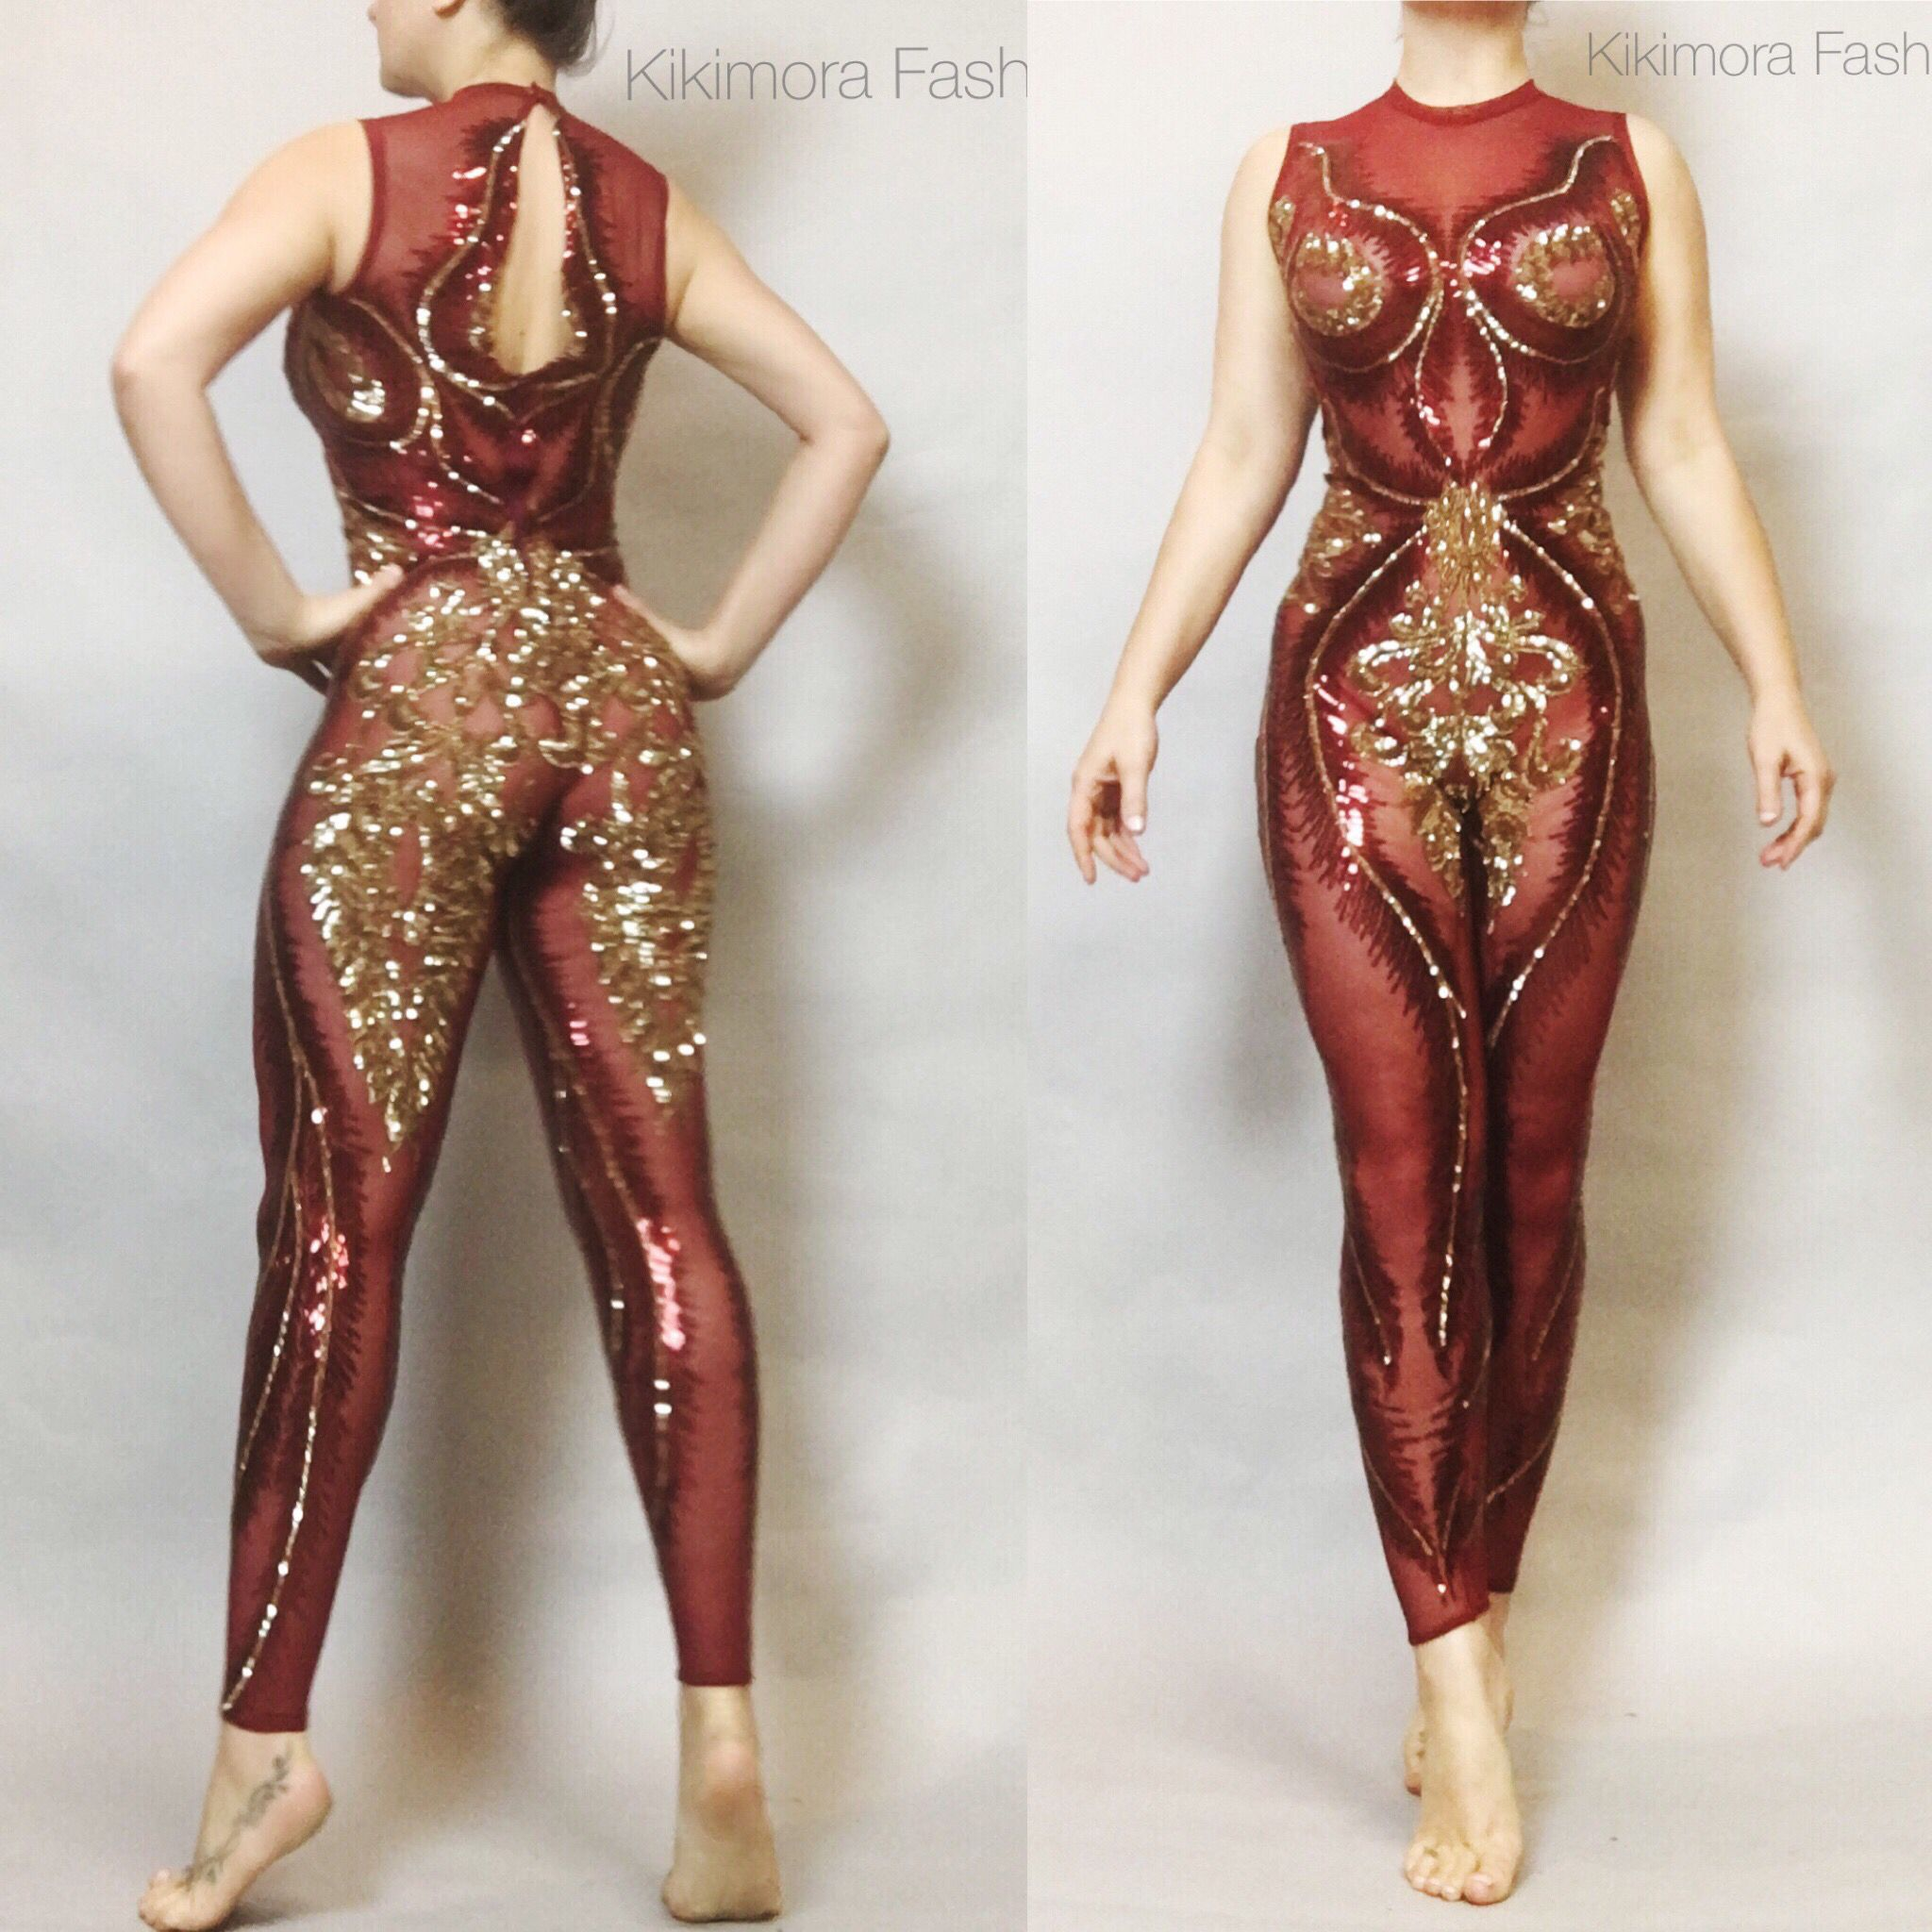 a972c41451 Kikimora Fashion on Etsy. Custom catsuits.  christmas  catsuit  bodysuit   romper  costumes  aerialyoga  contortionist  circus